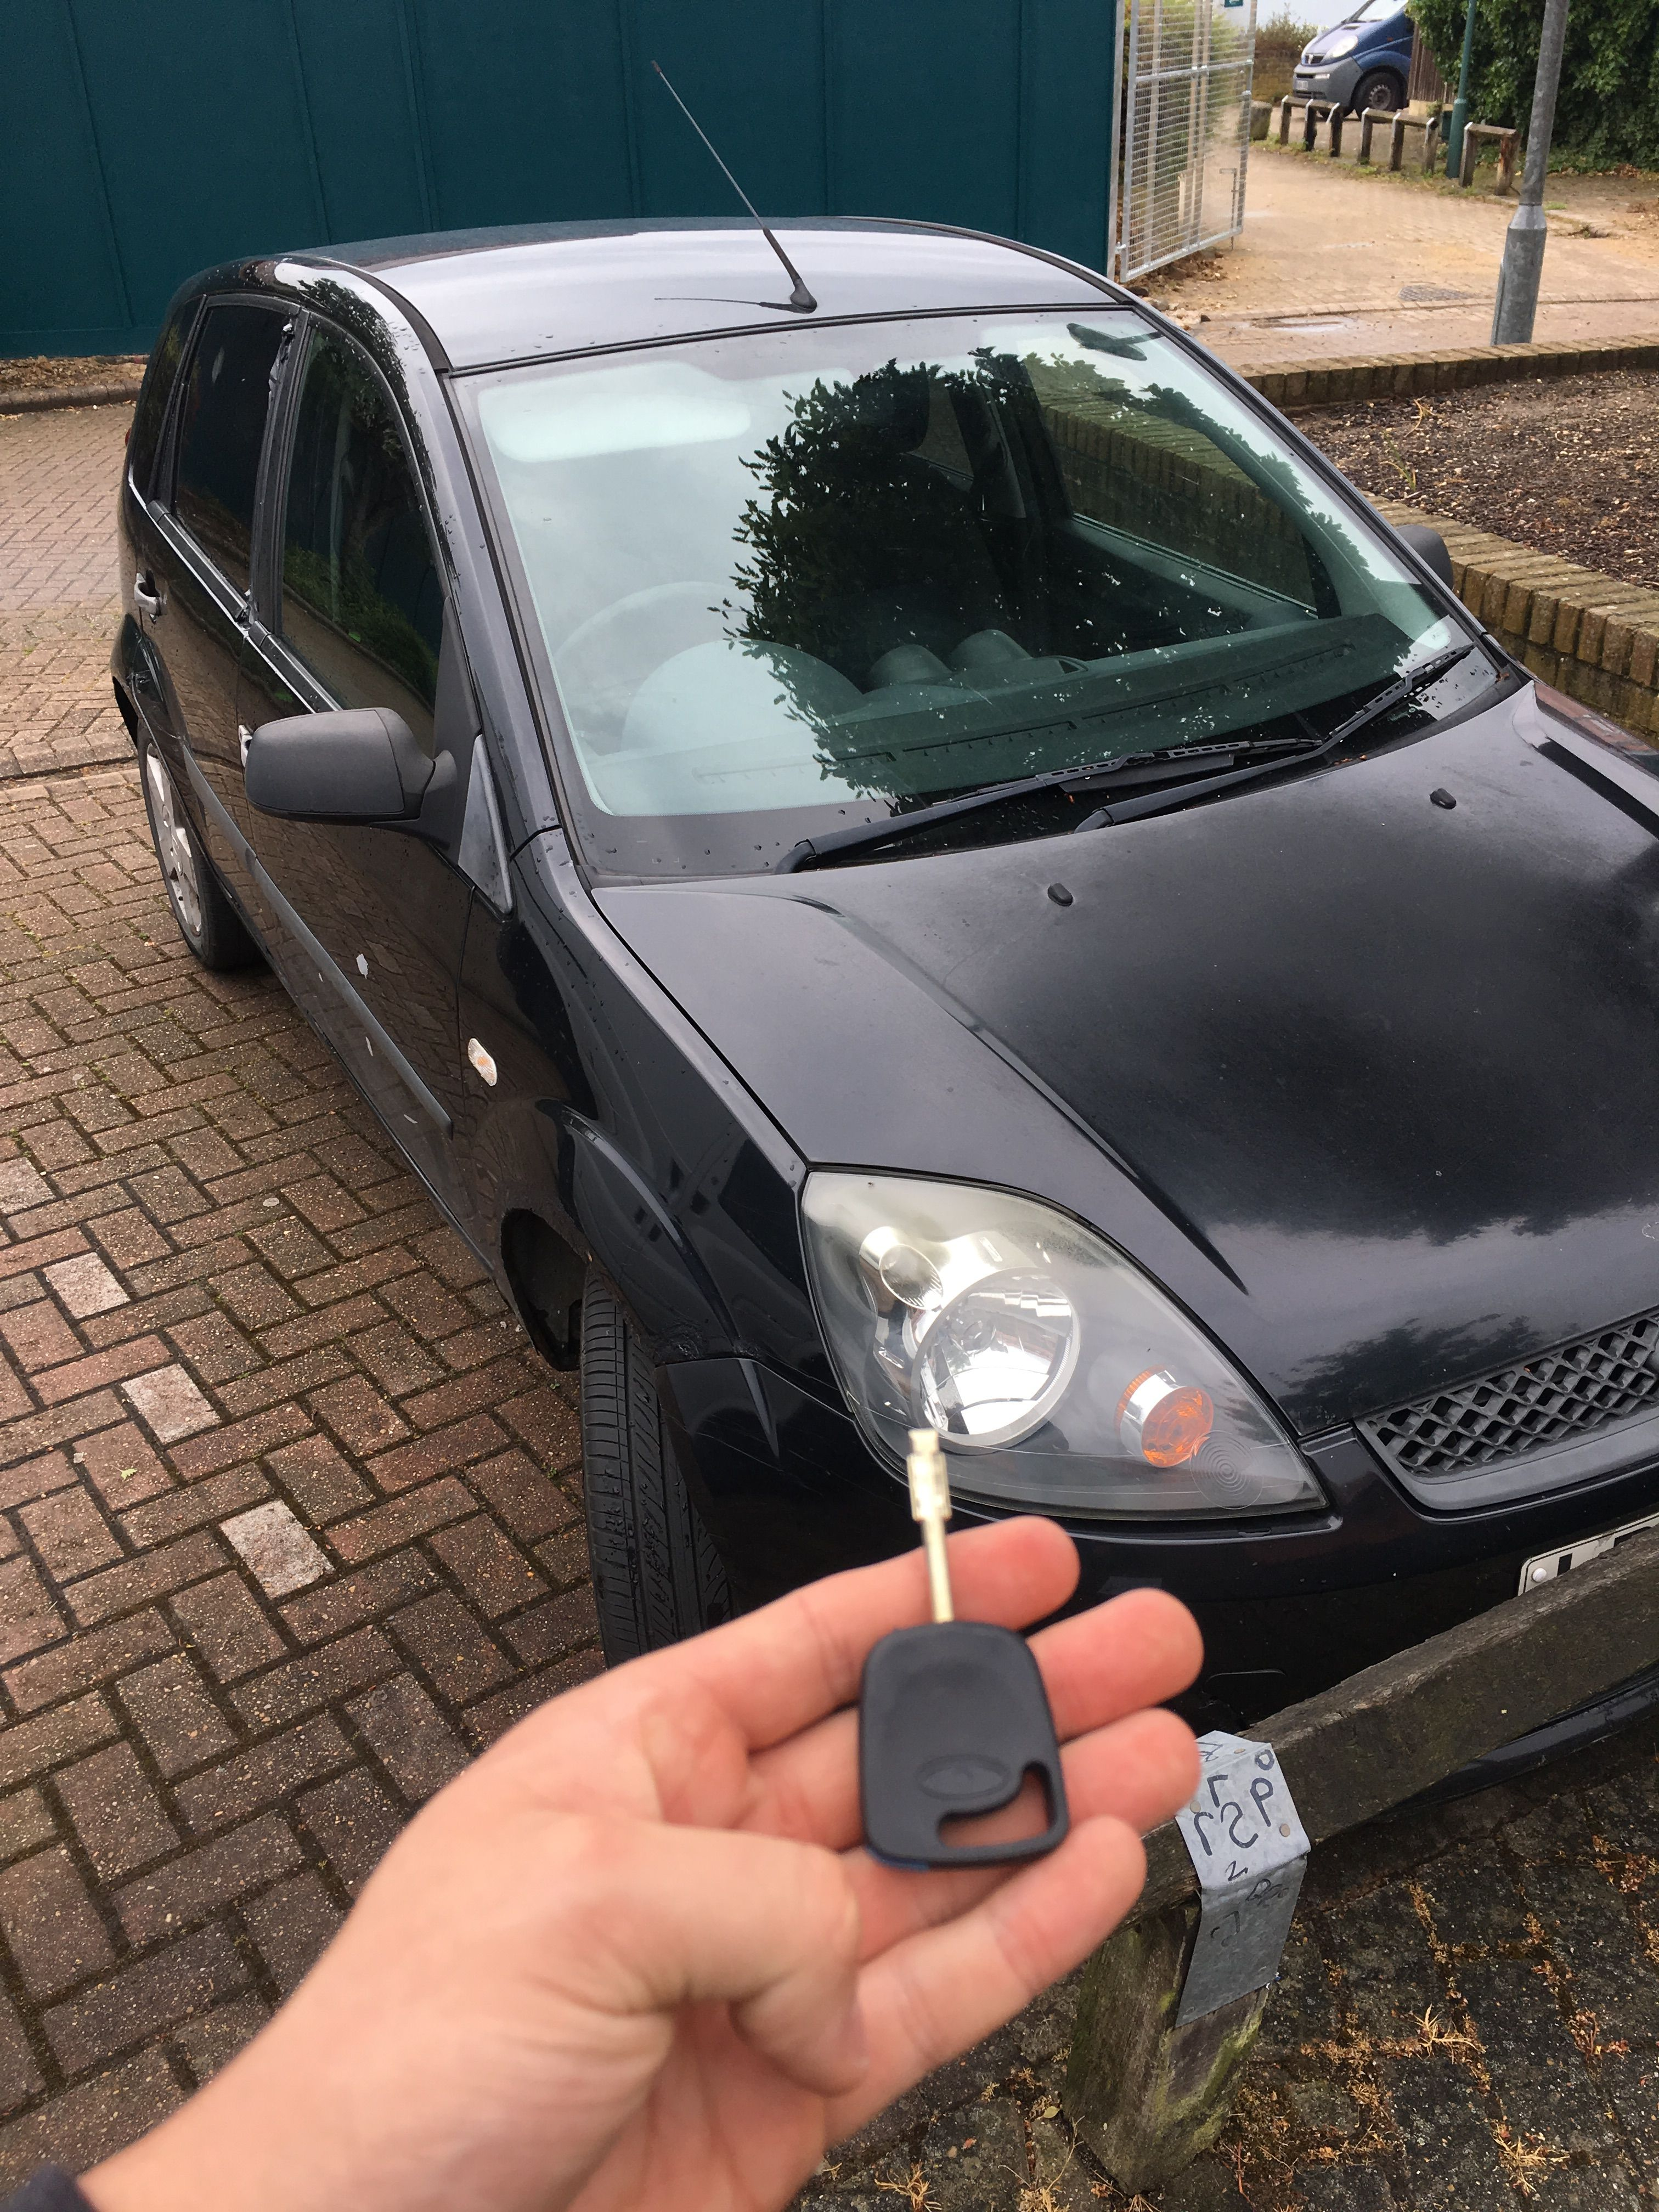 This Morning We Done A Broken Key Replacement On This Ford Fiesta The Lady Left Her Key On The Cooker And Melted I Key Replacement Auto Locksmith Ford Fiesta